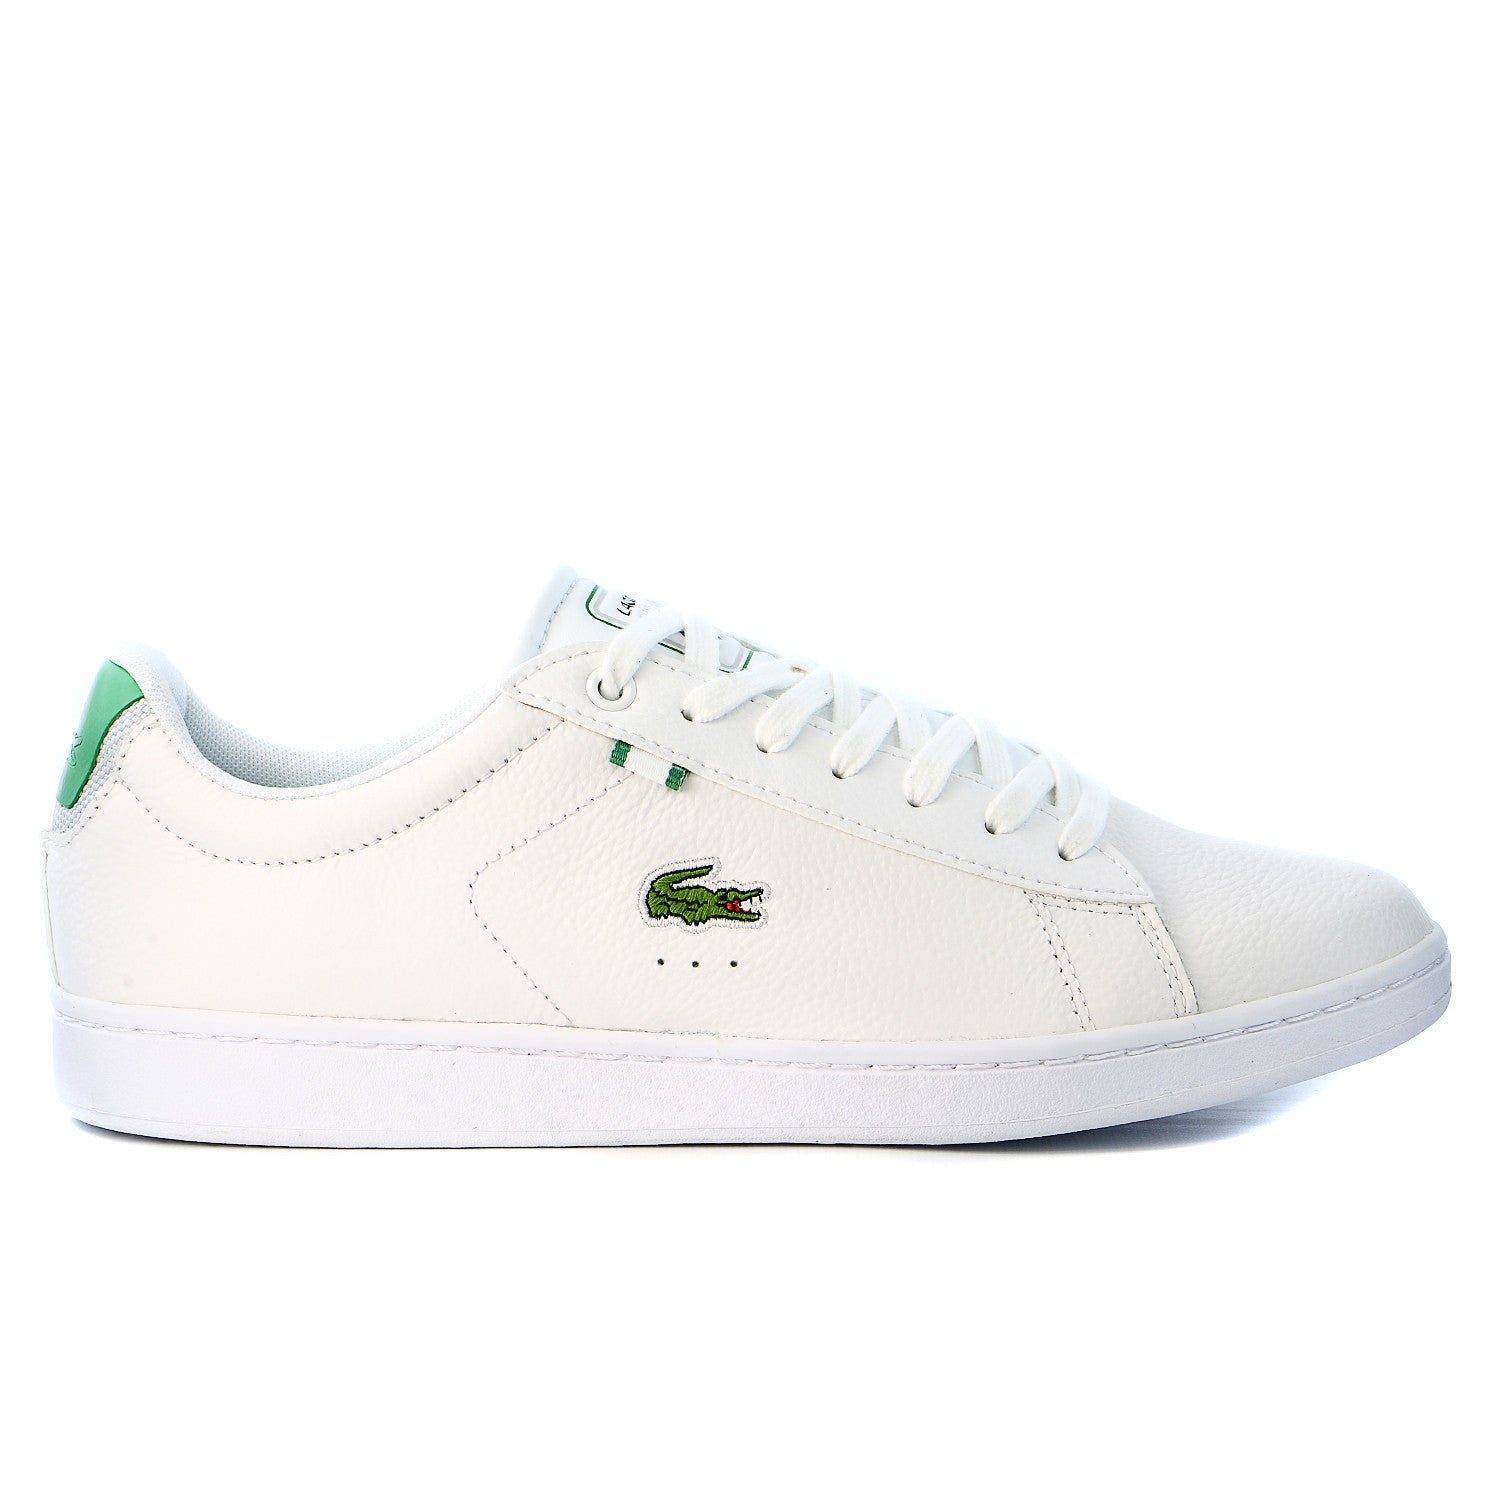 9512ec6859c90 Lacoste Carnaby EVO Leather Training Sneaker Shoe - White Green - Mens -  Shoplifestyle